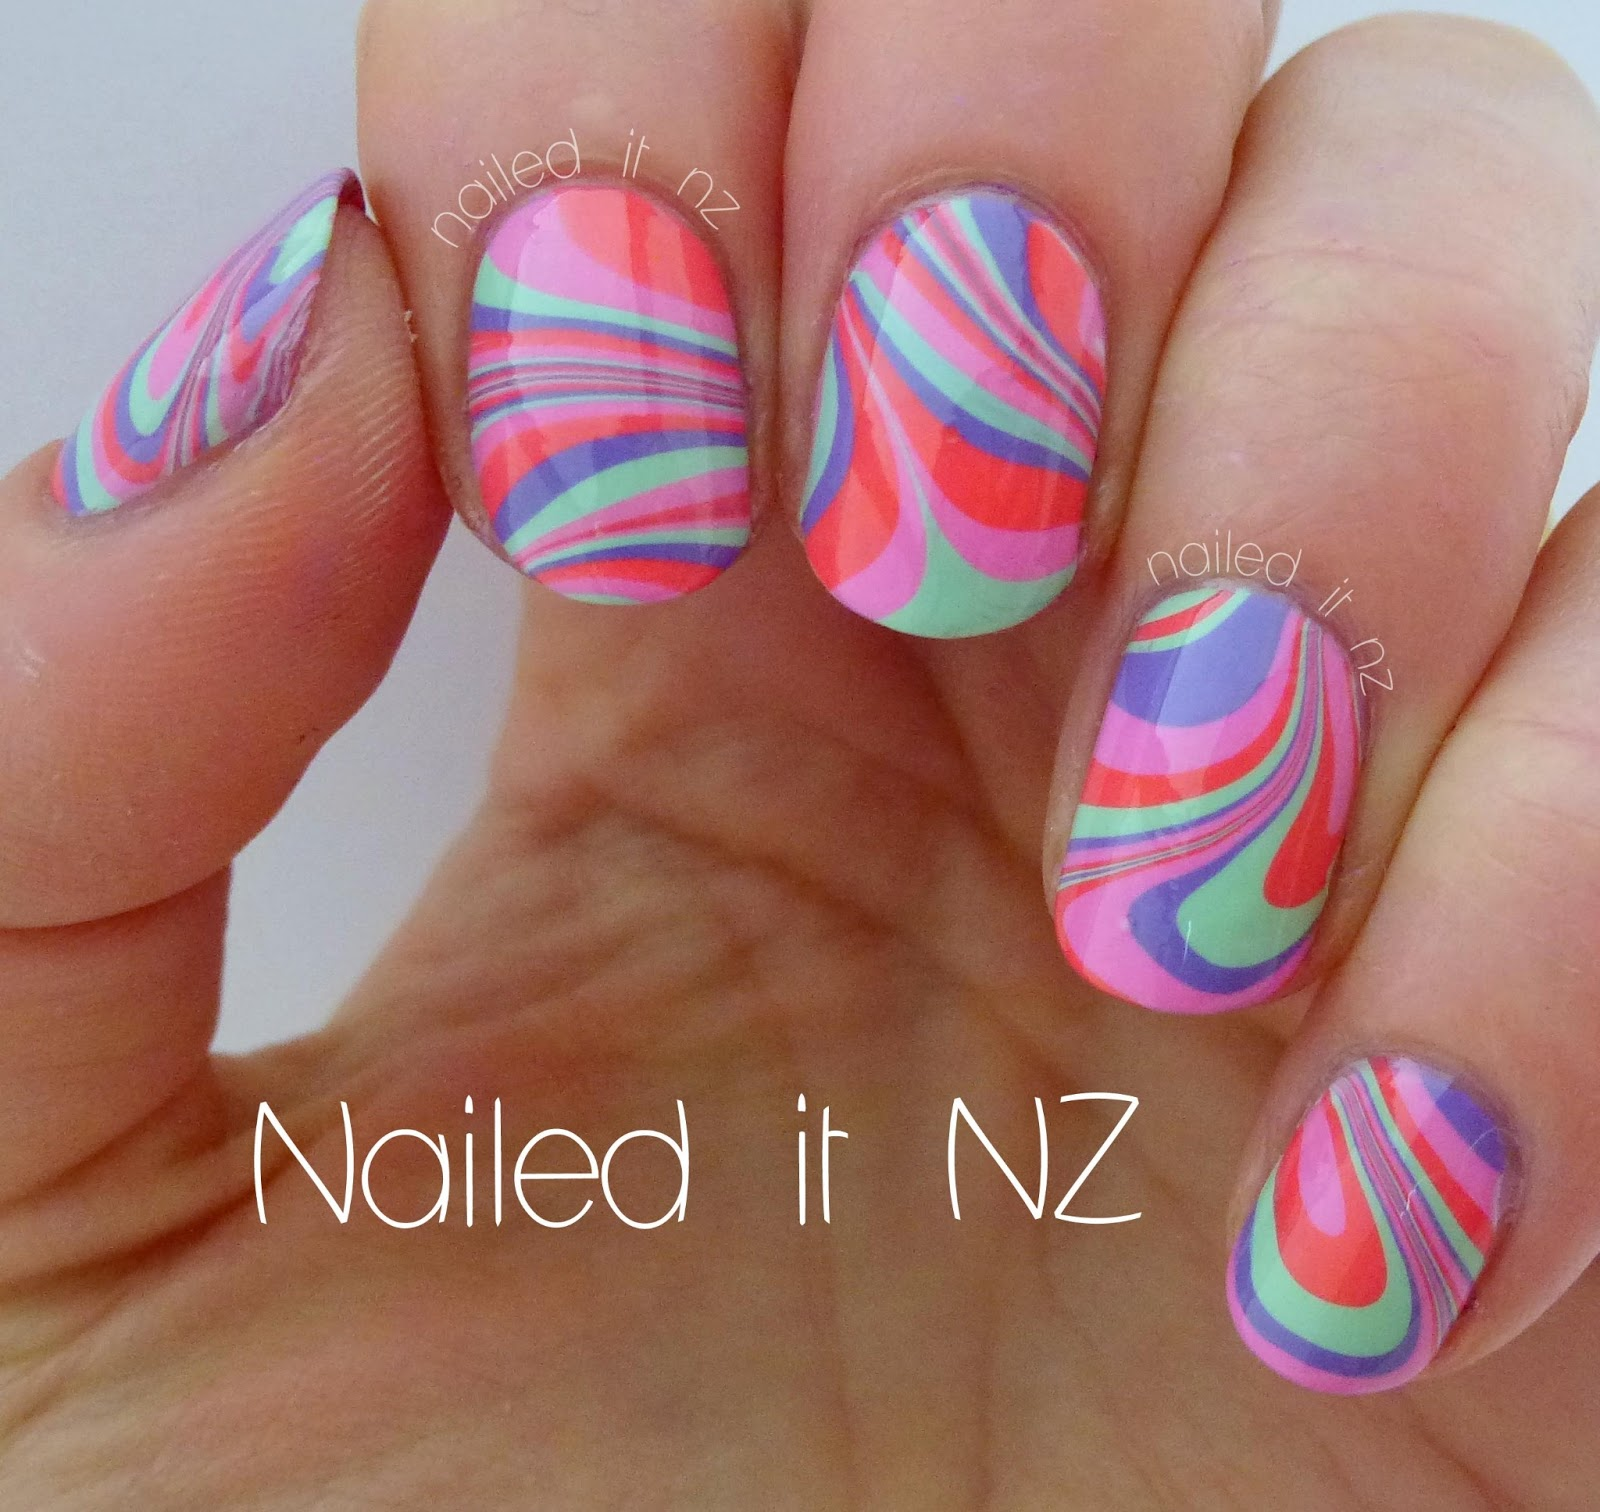 Water marble nail art tutorial.